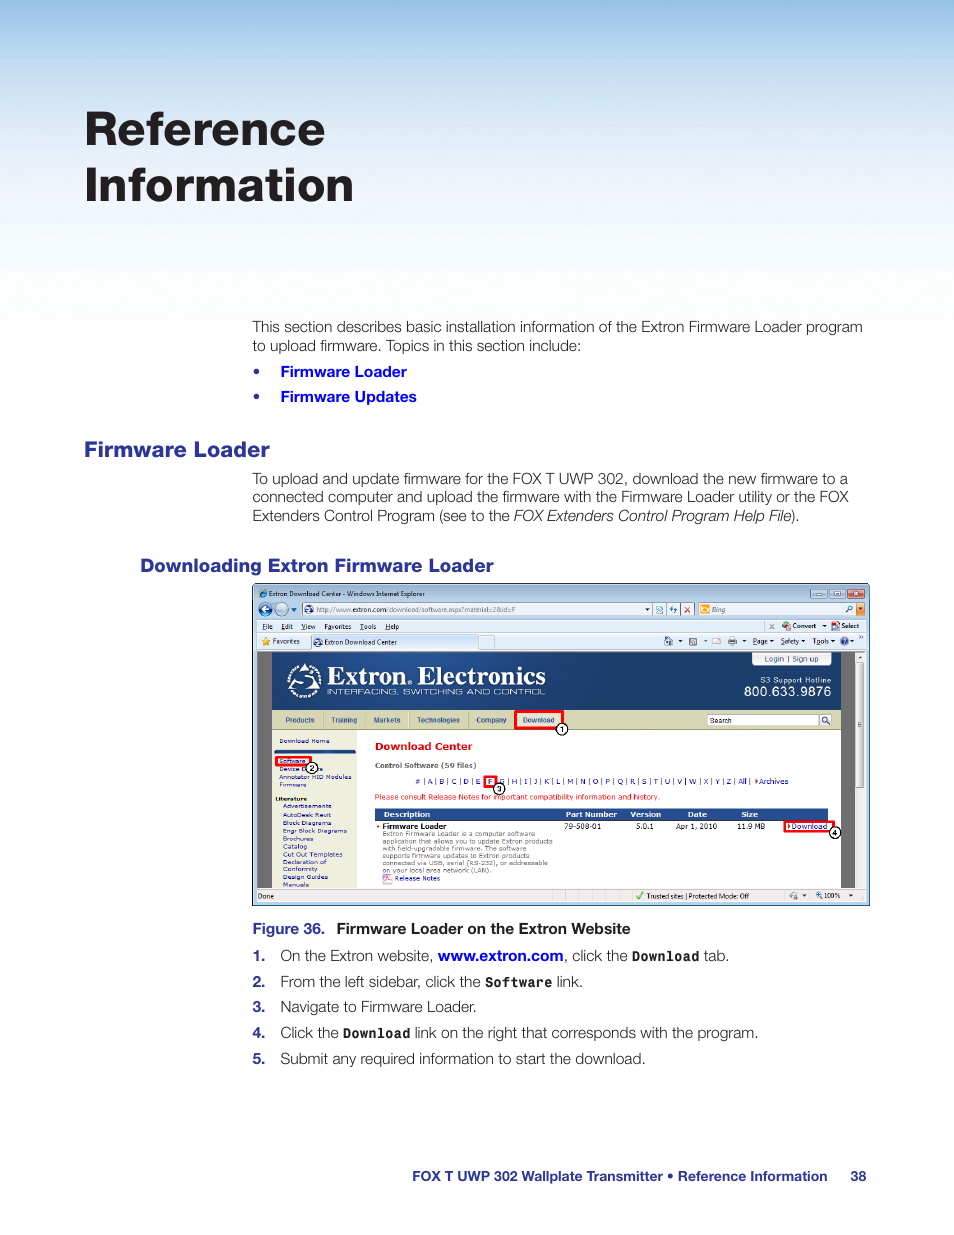 Reference information, Firmware loader, Downloading extron firmware